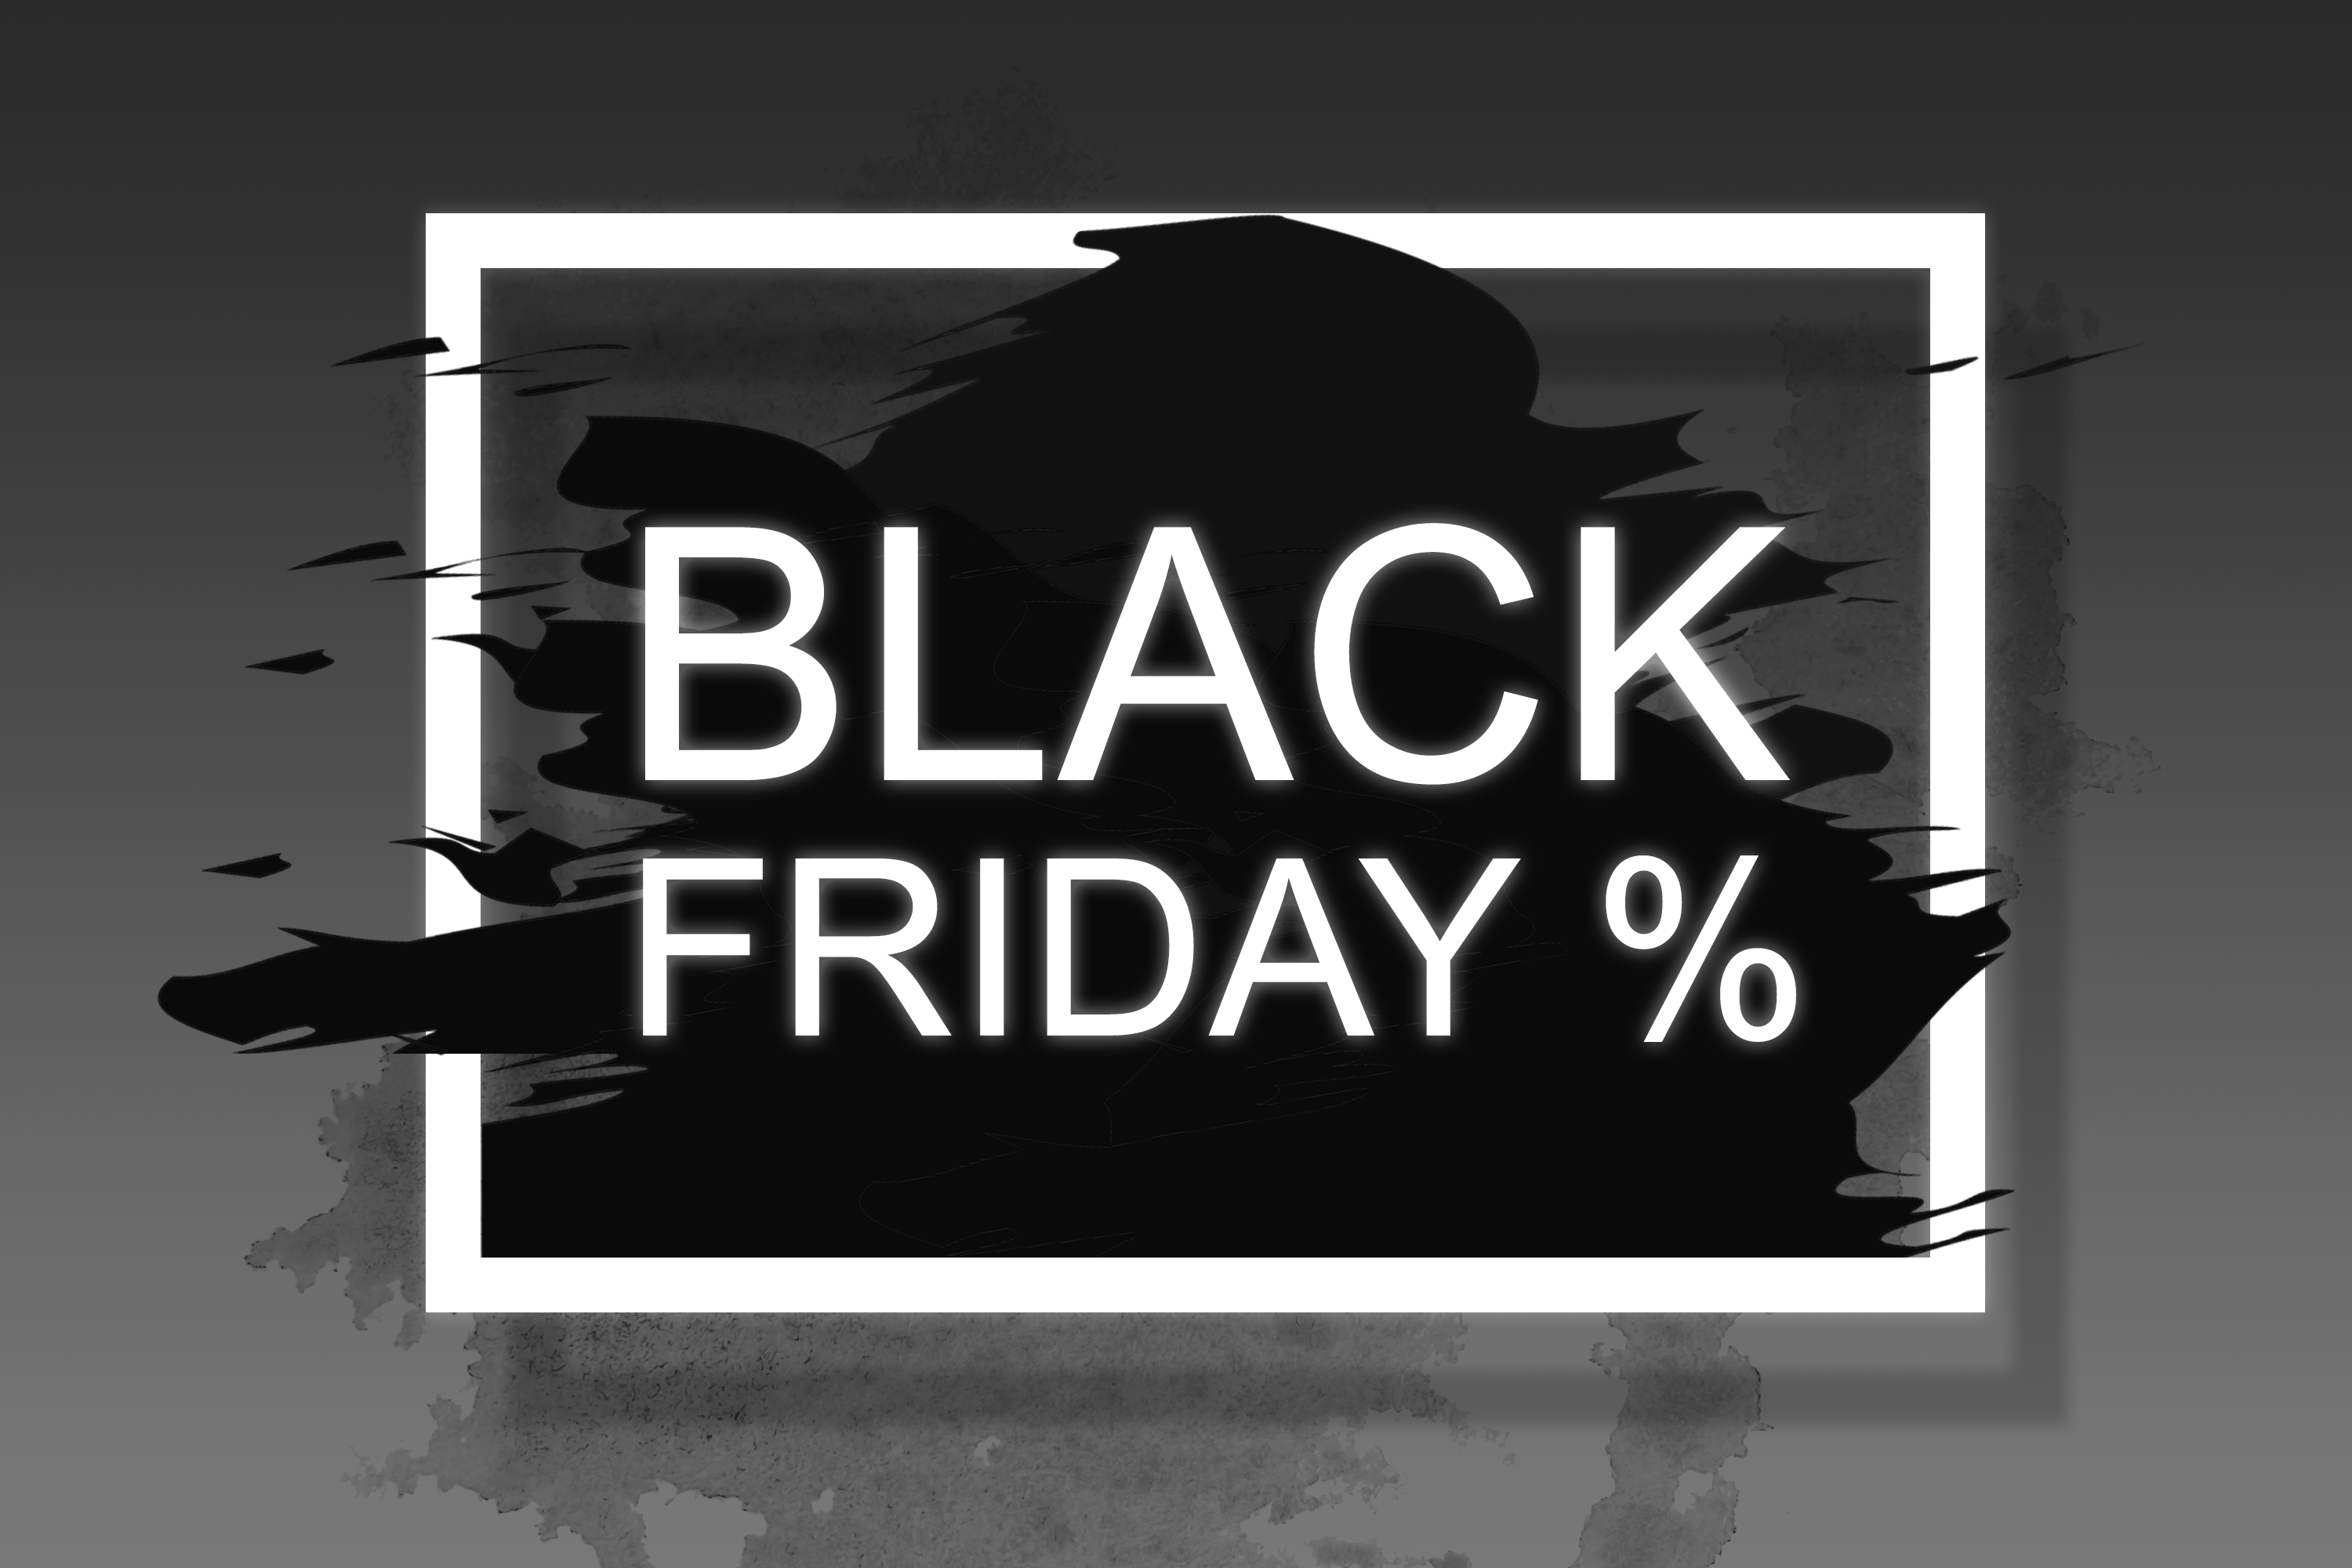 Black Friday 2019 (MAKY_OREL- Pixabay)